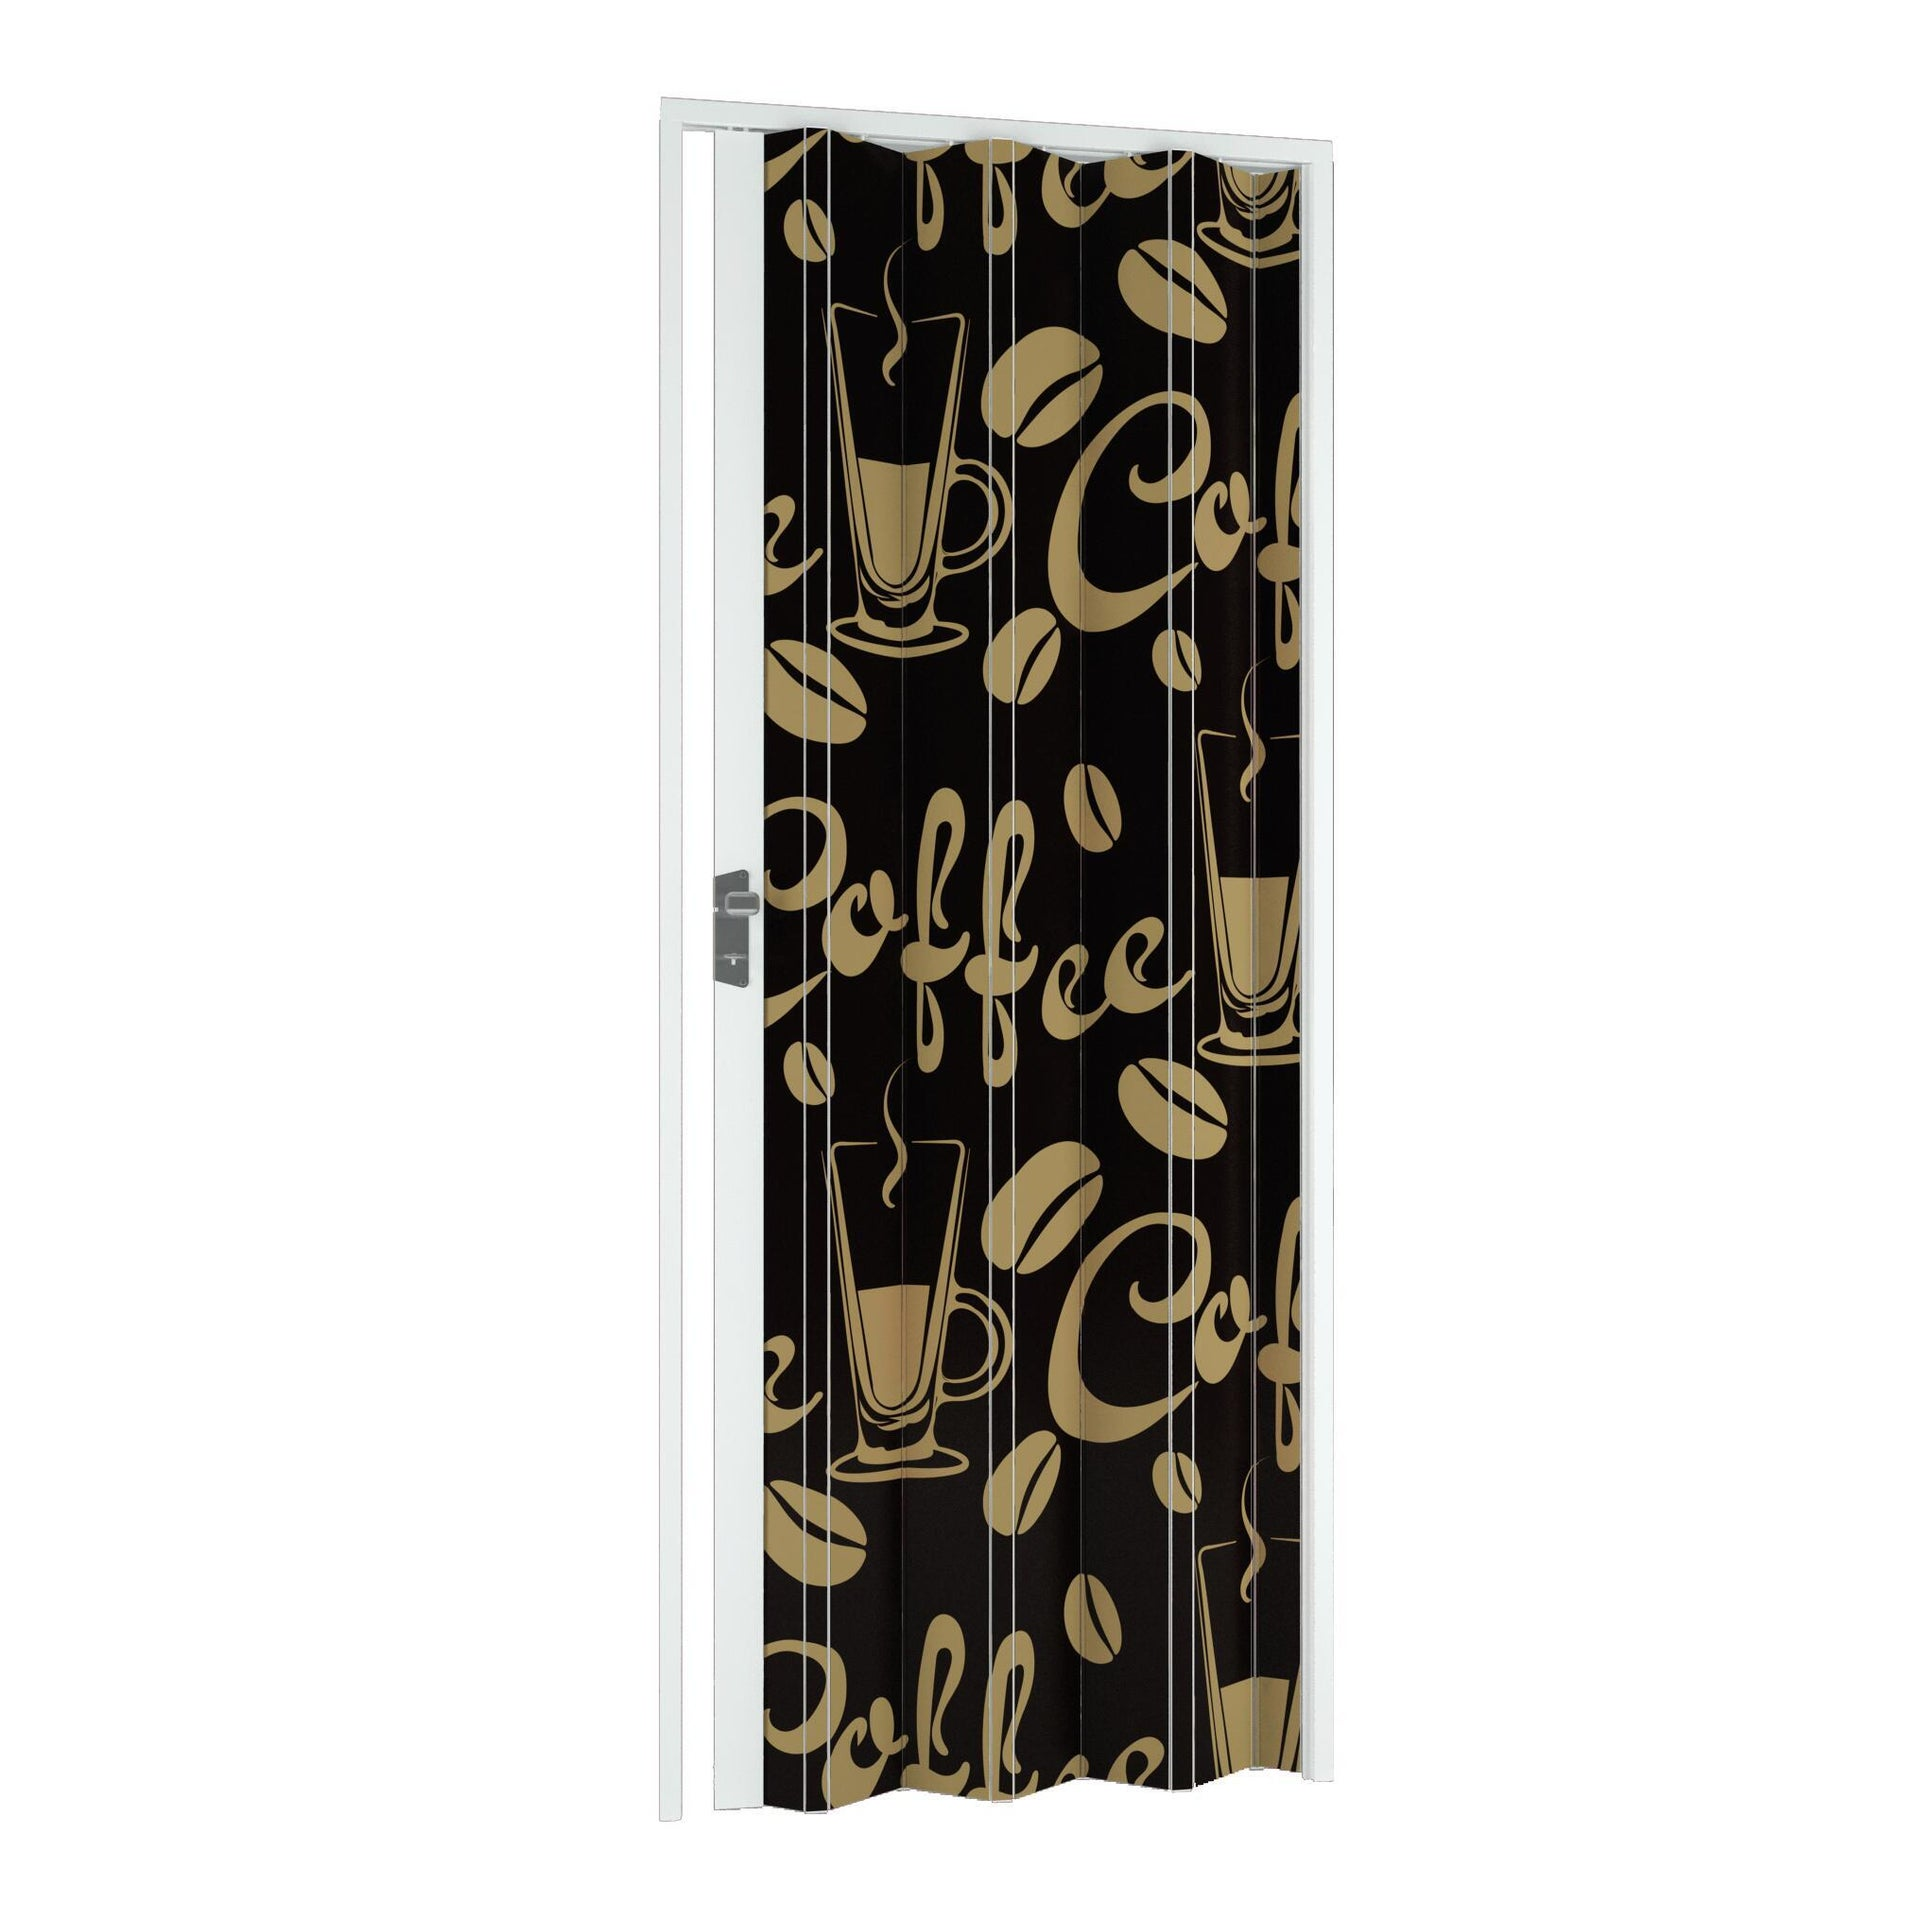 Porta a soffietto Coffee in pvc multicolore L 102 x H 214 cm